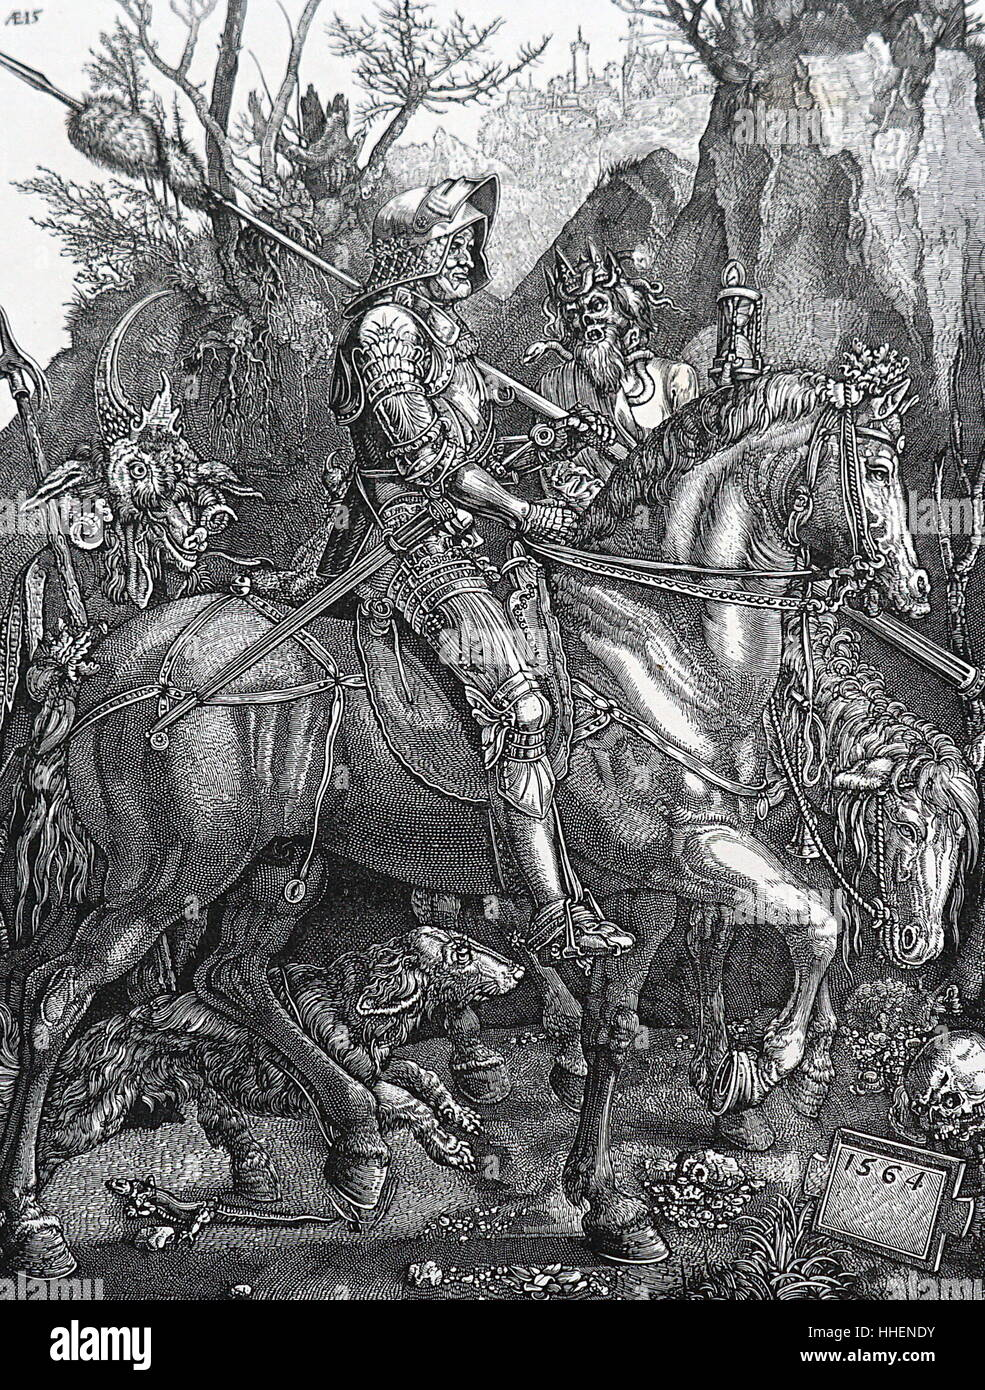 Print titled 'The Knight of Death' by Albrecht Dürer (1471-1528) a painter, printmaker, and theorist. - Stock Image